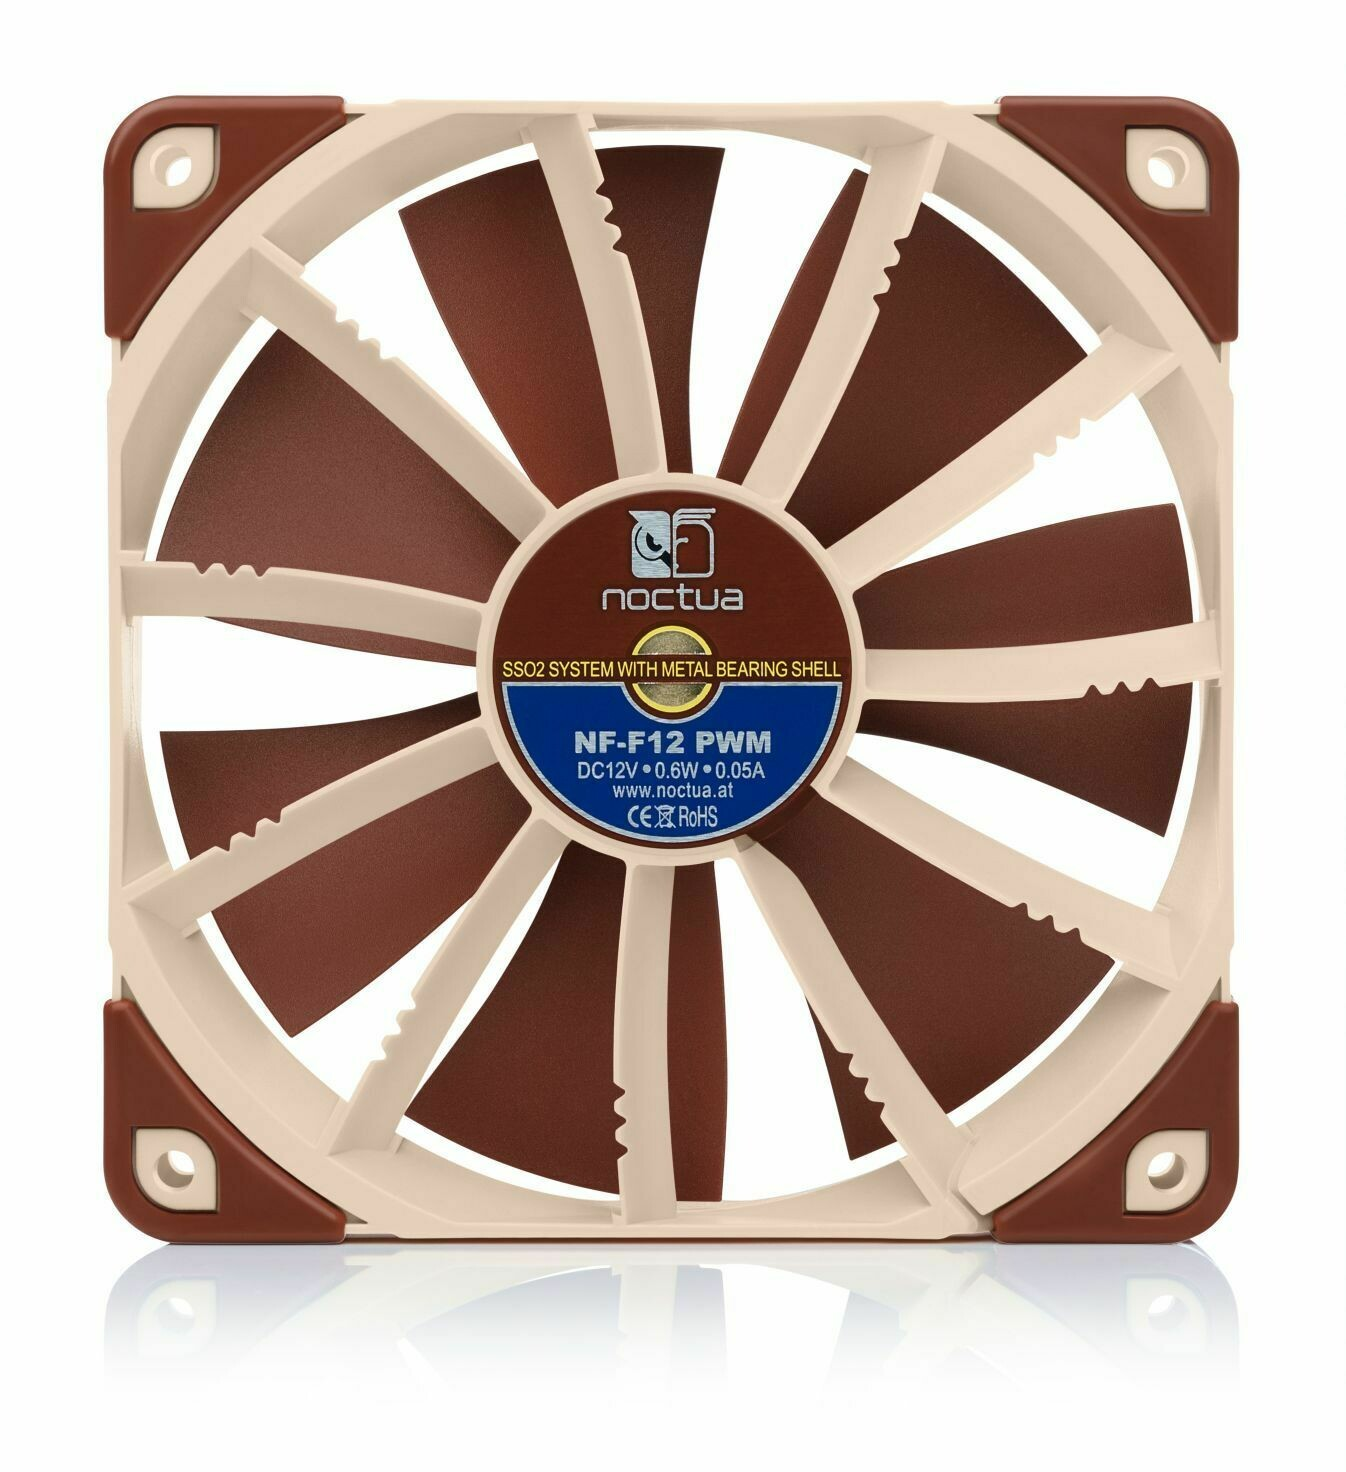 Fan NF-F12 PWM 120x120x25 mm 4pin 1500rpm avec Focused Flow SO2 Bearing de Noctua